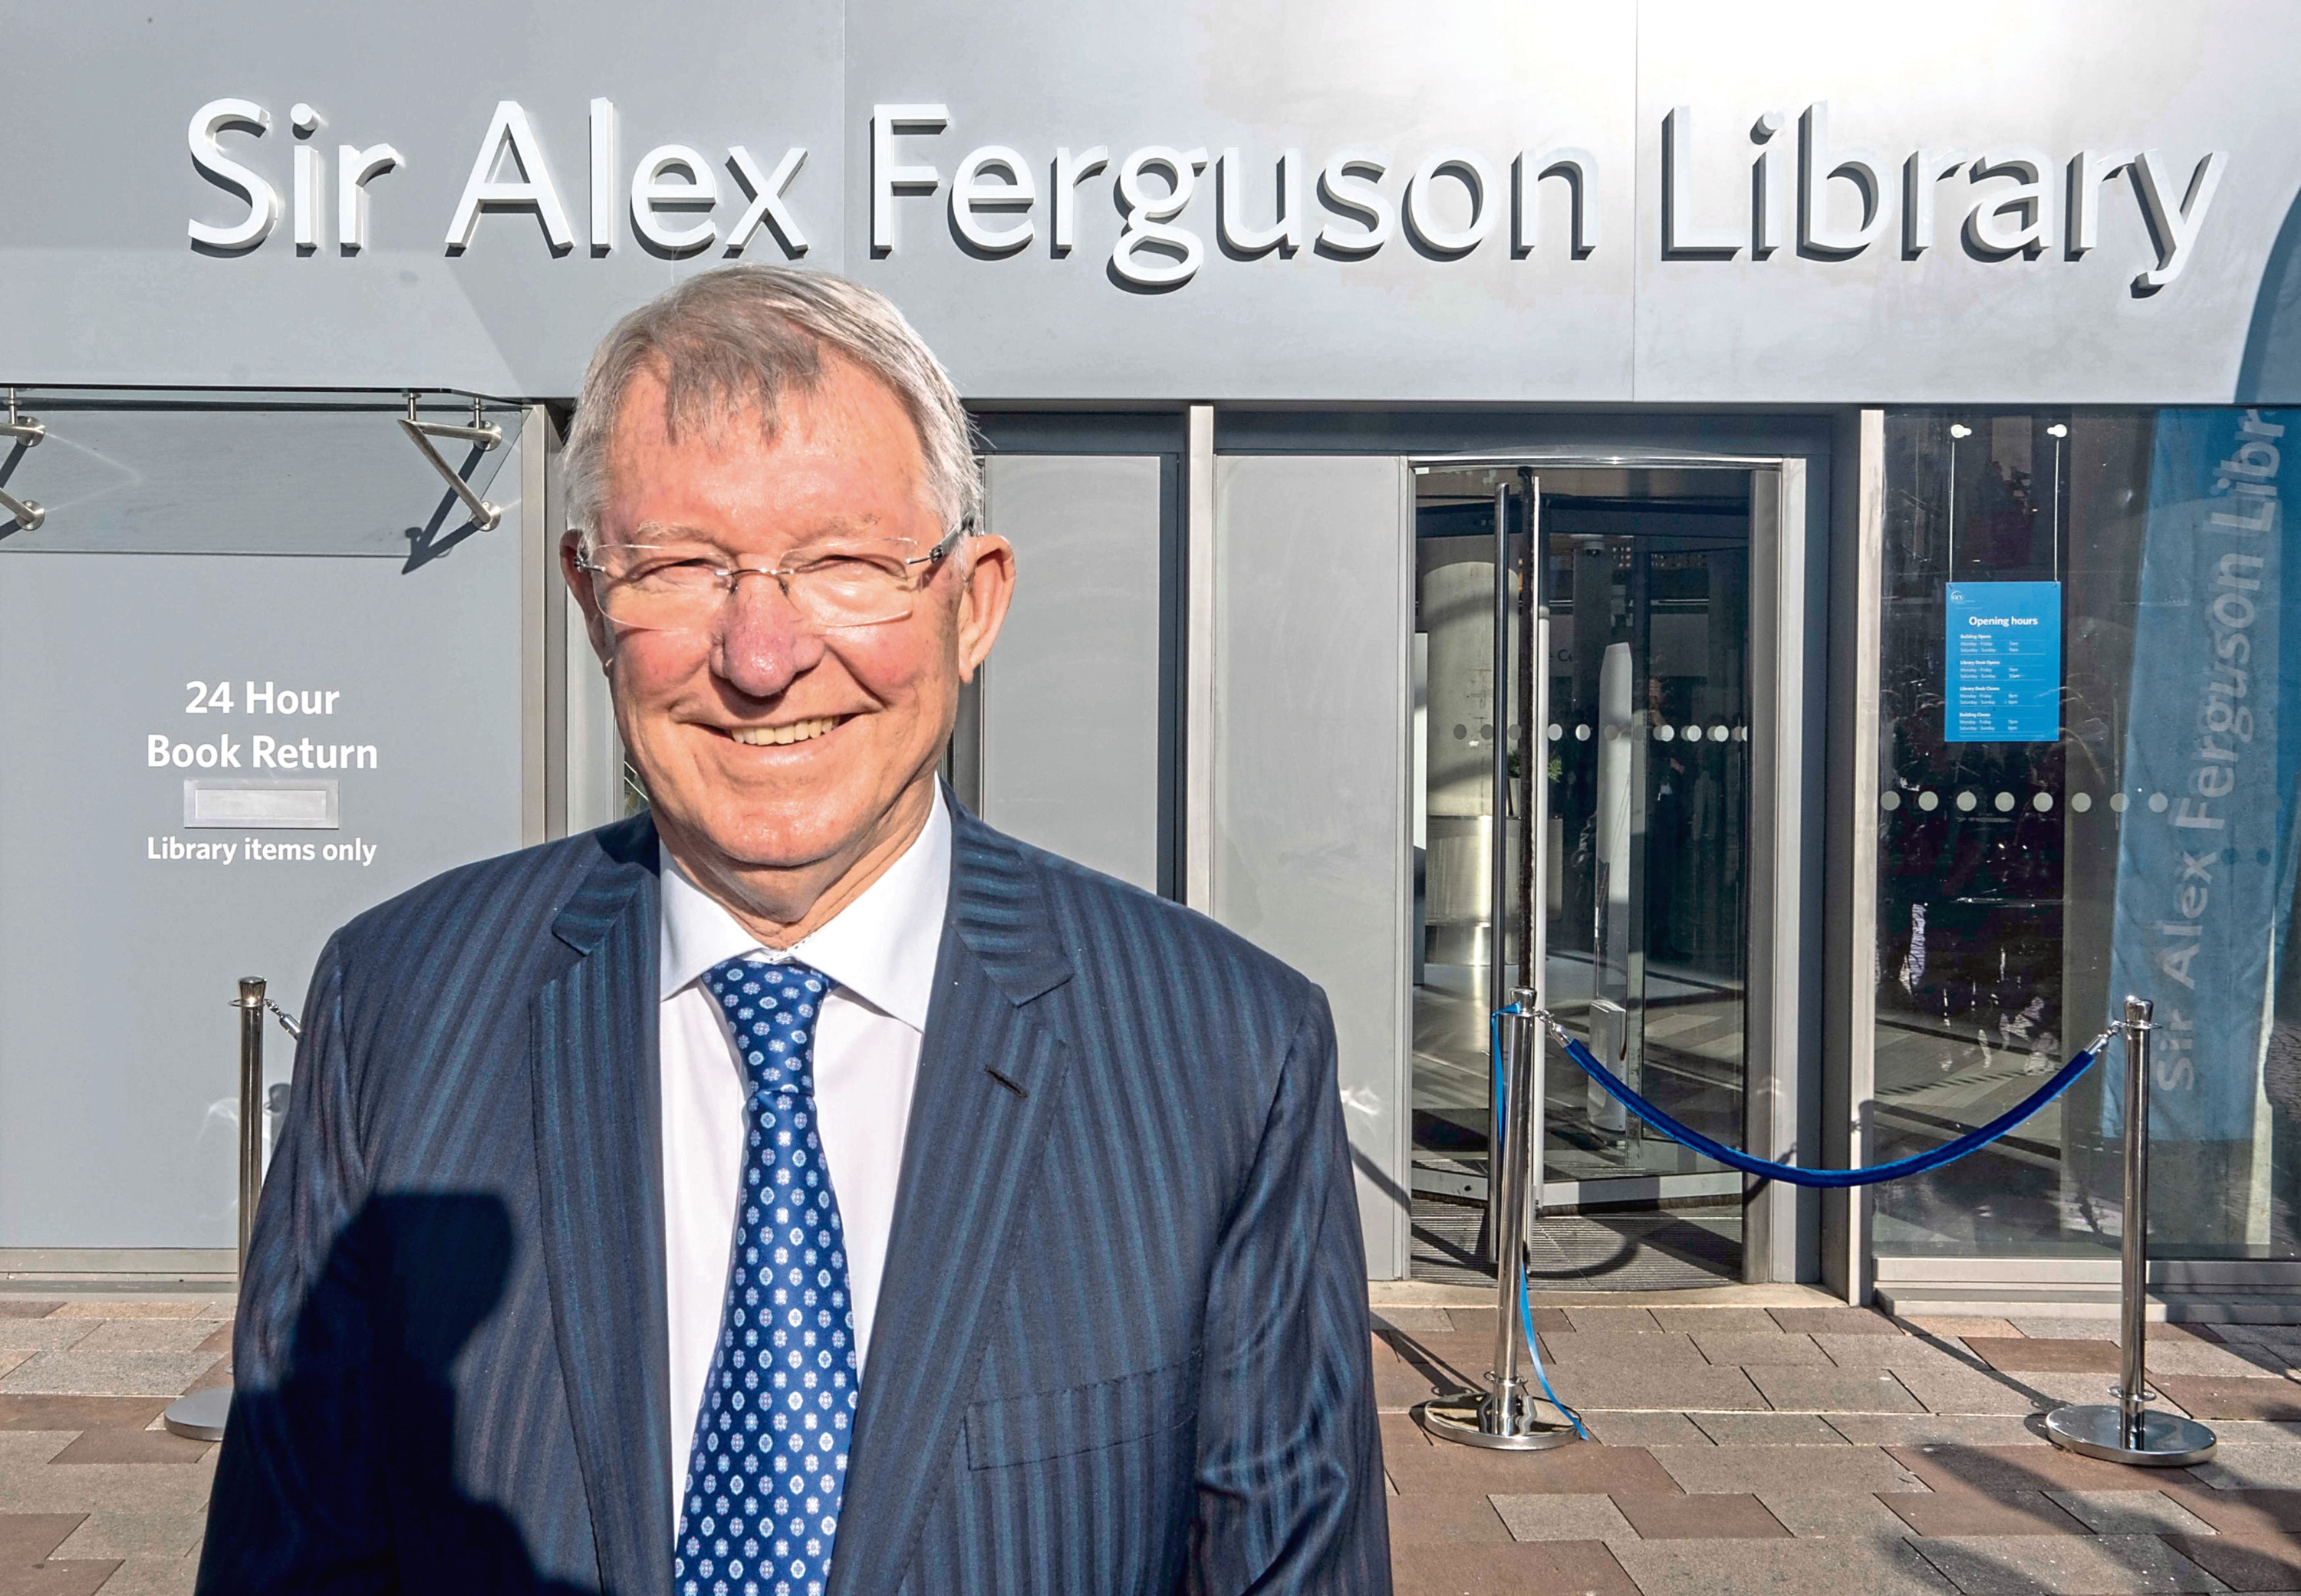 Sir Alex Ferguson at the new library